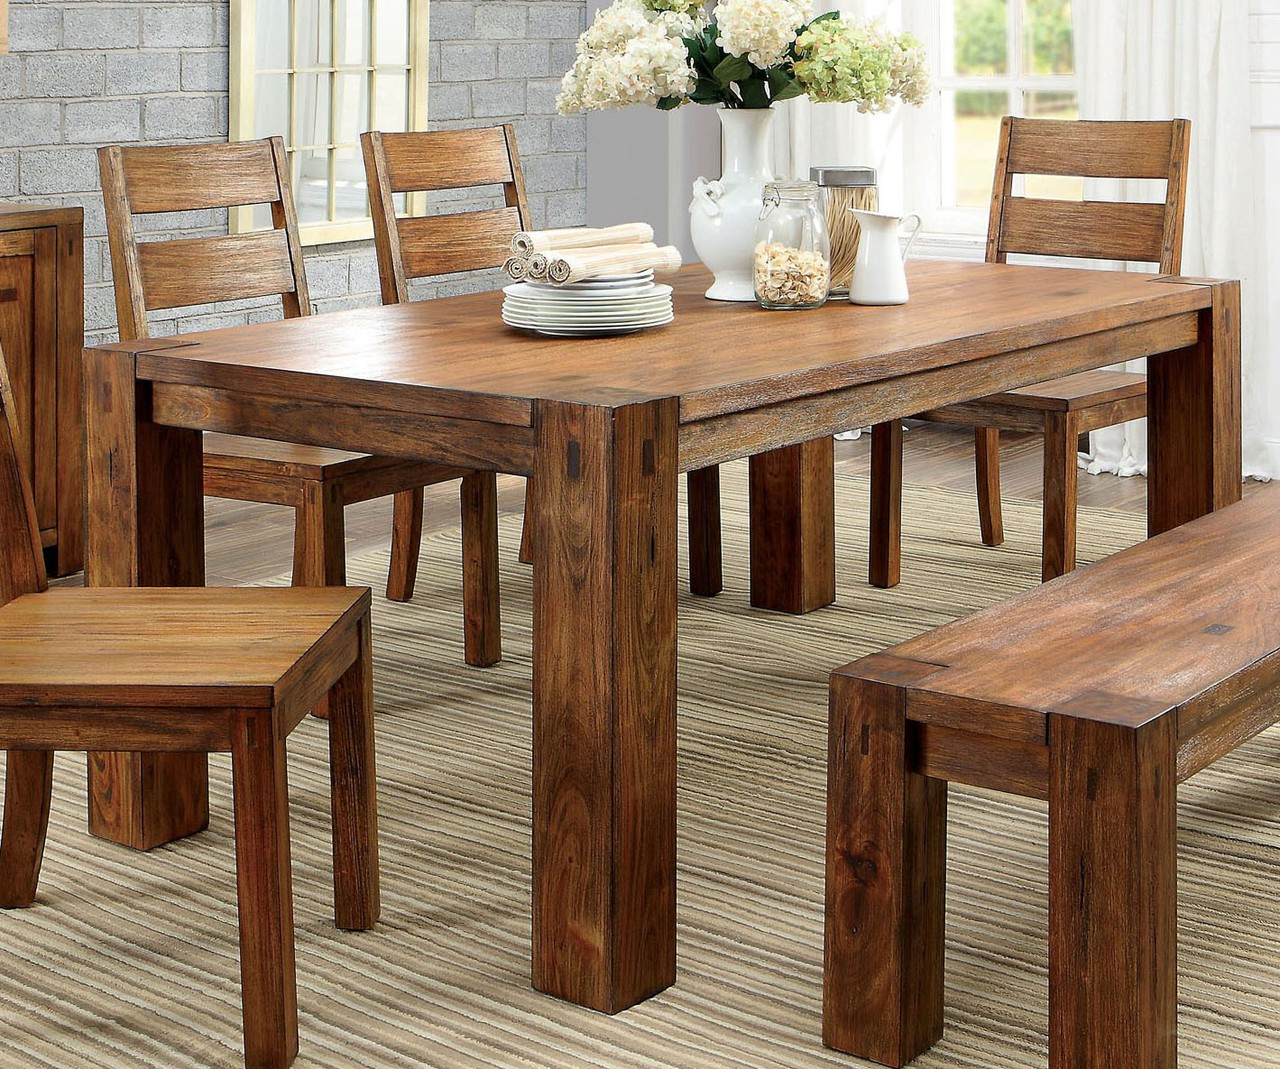 Furniture of america cm3603t dark oak table chairs bench